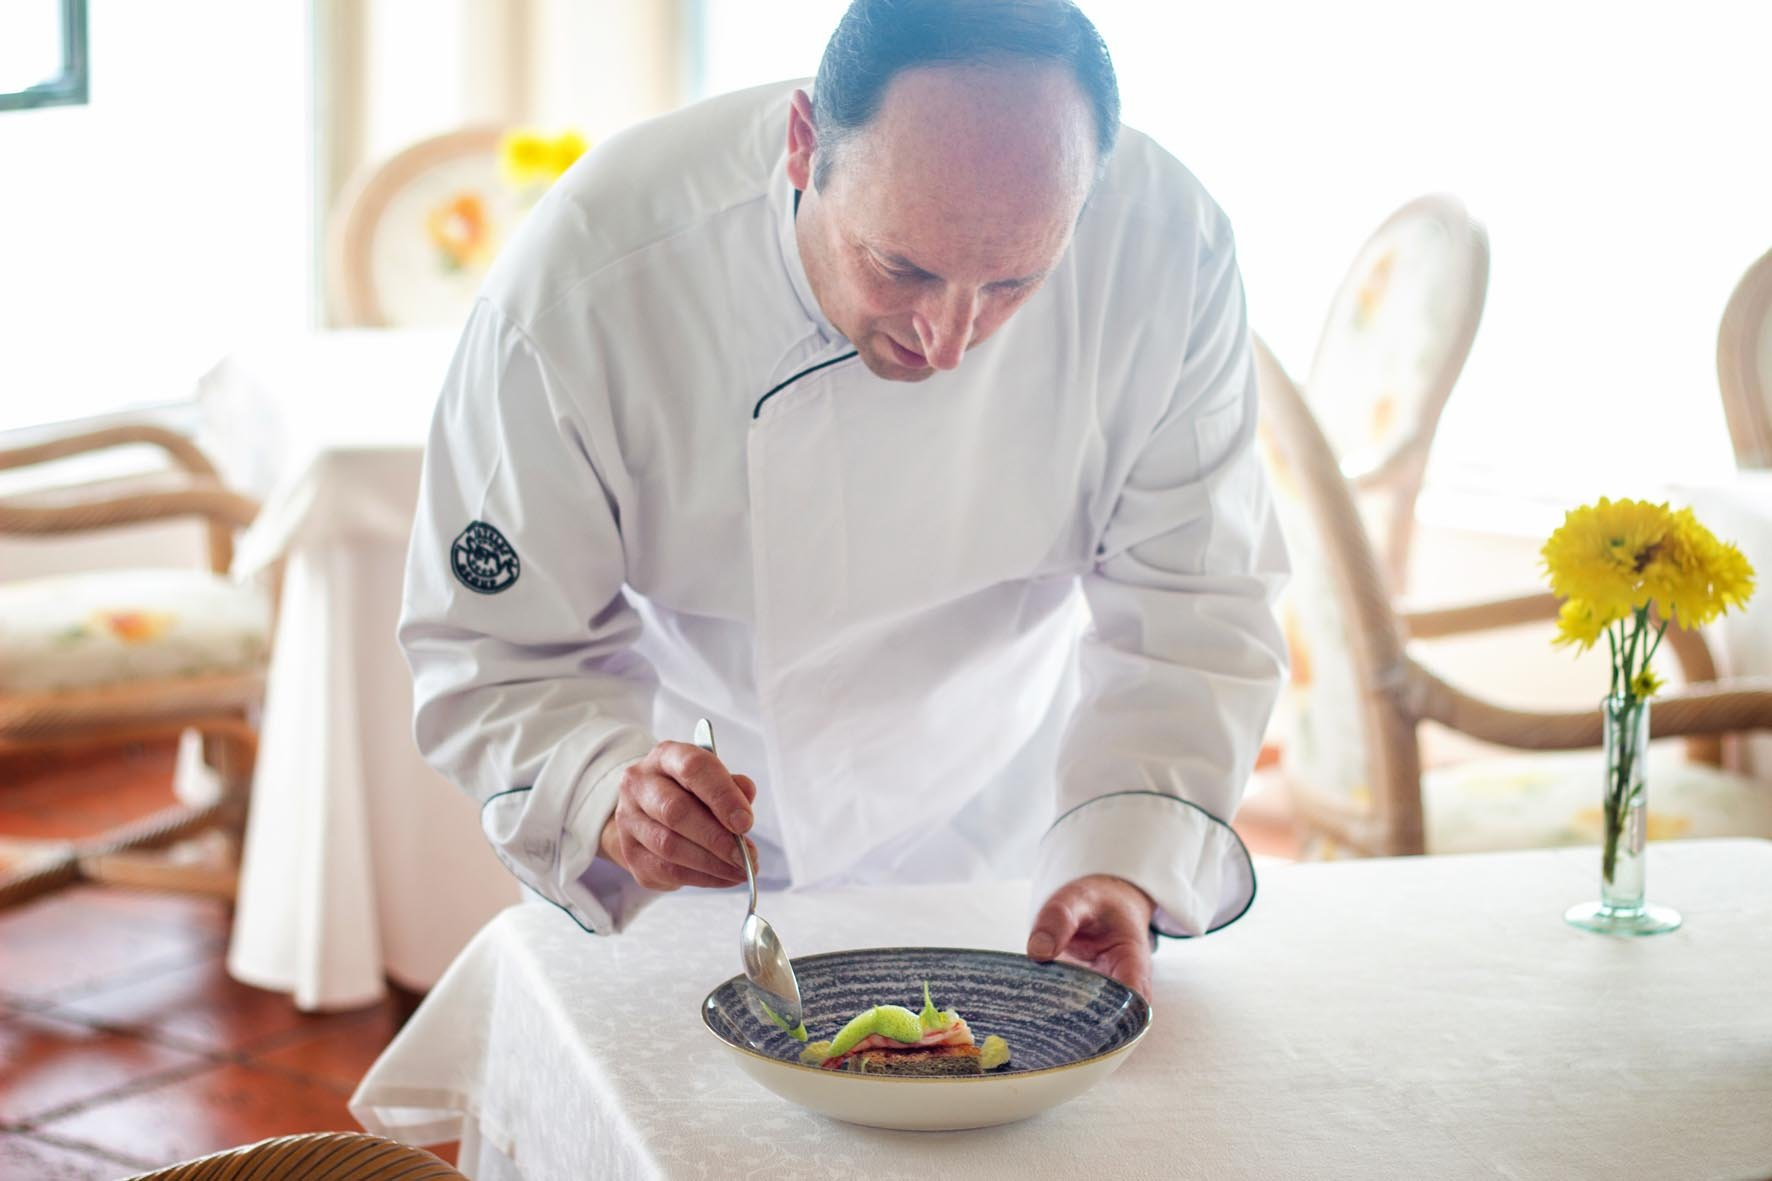 Our chef Jean Marc Sanz offers exquisite gastronomic proposals every year